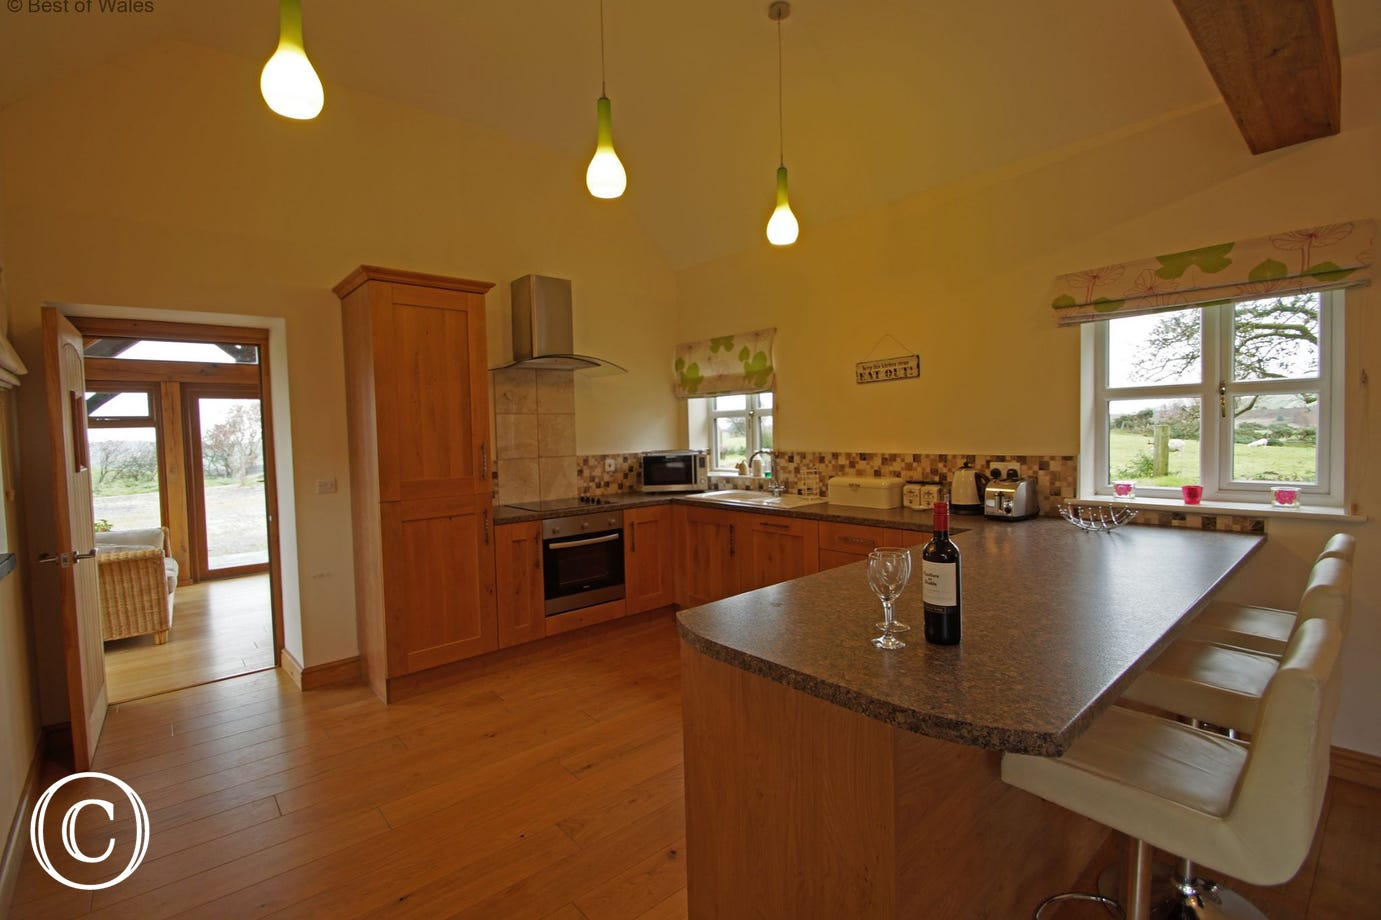 Extremely well equipped, contemporary kitchen with breakfast bar